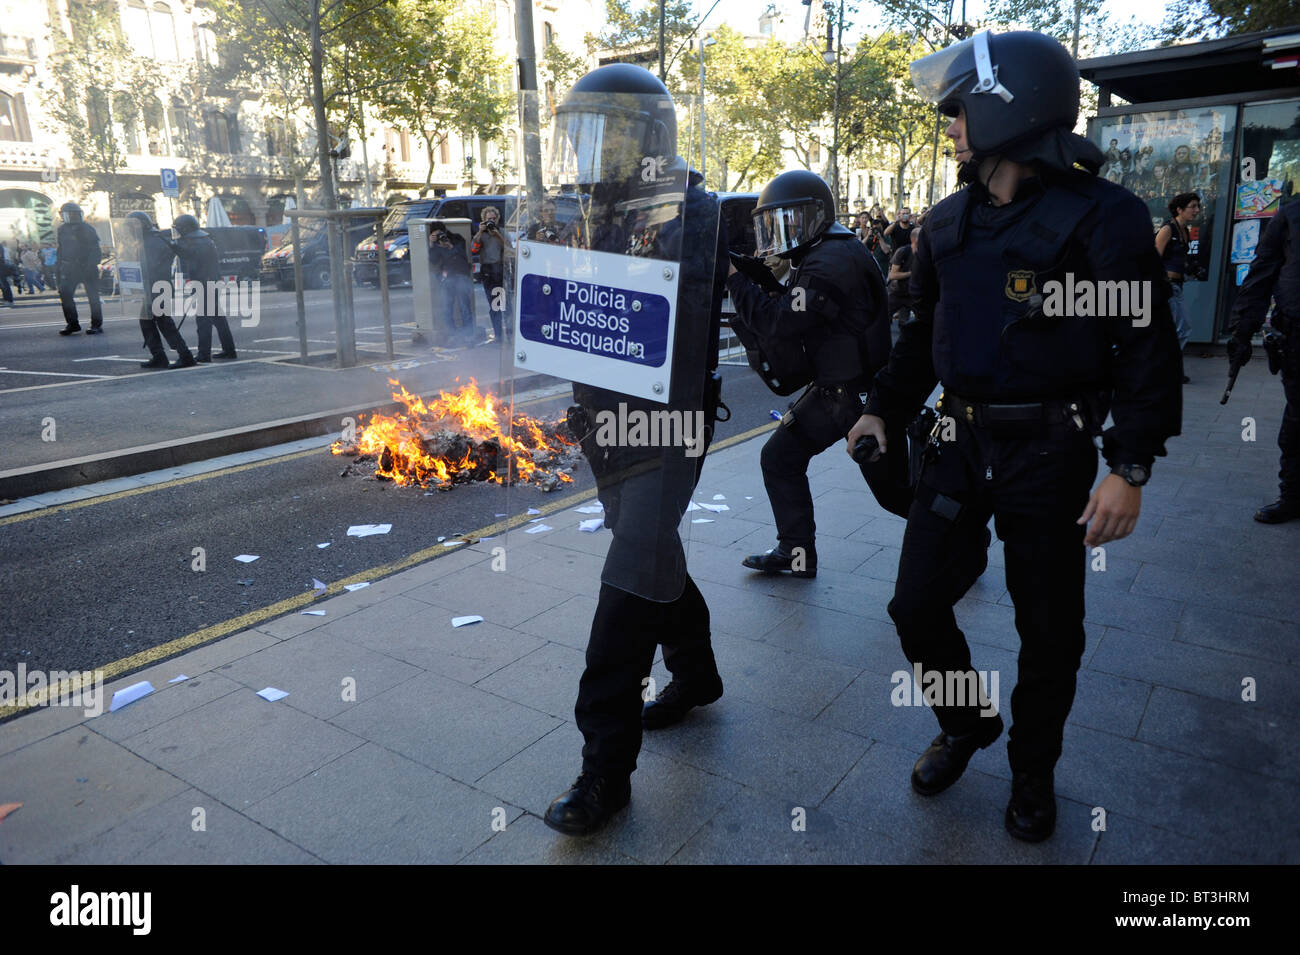 Riot police in the clashes at the Barcelona city centre during the general strike in Spain. - Stock Image